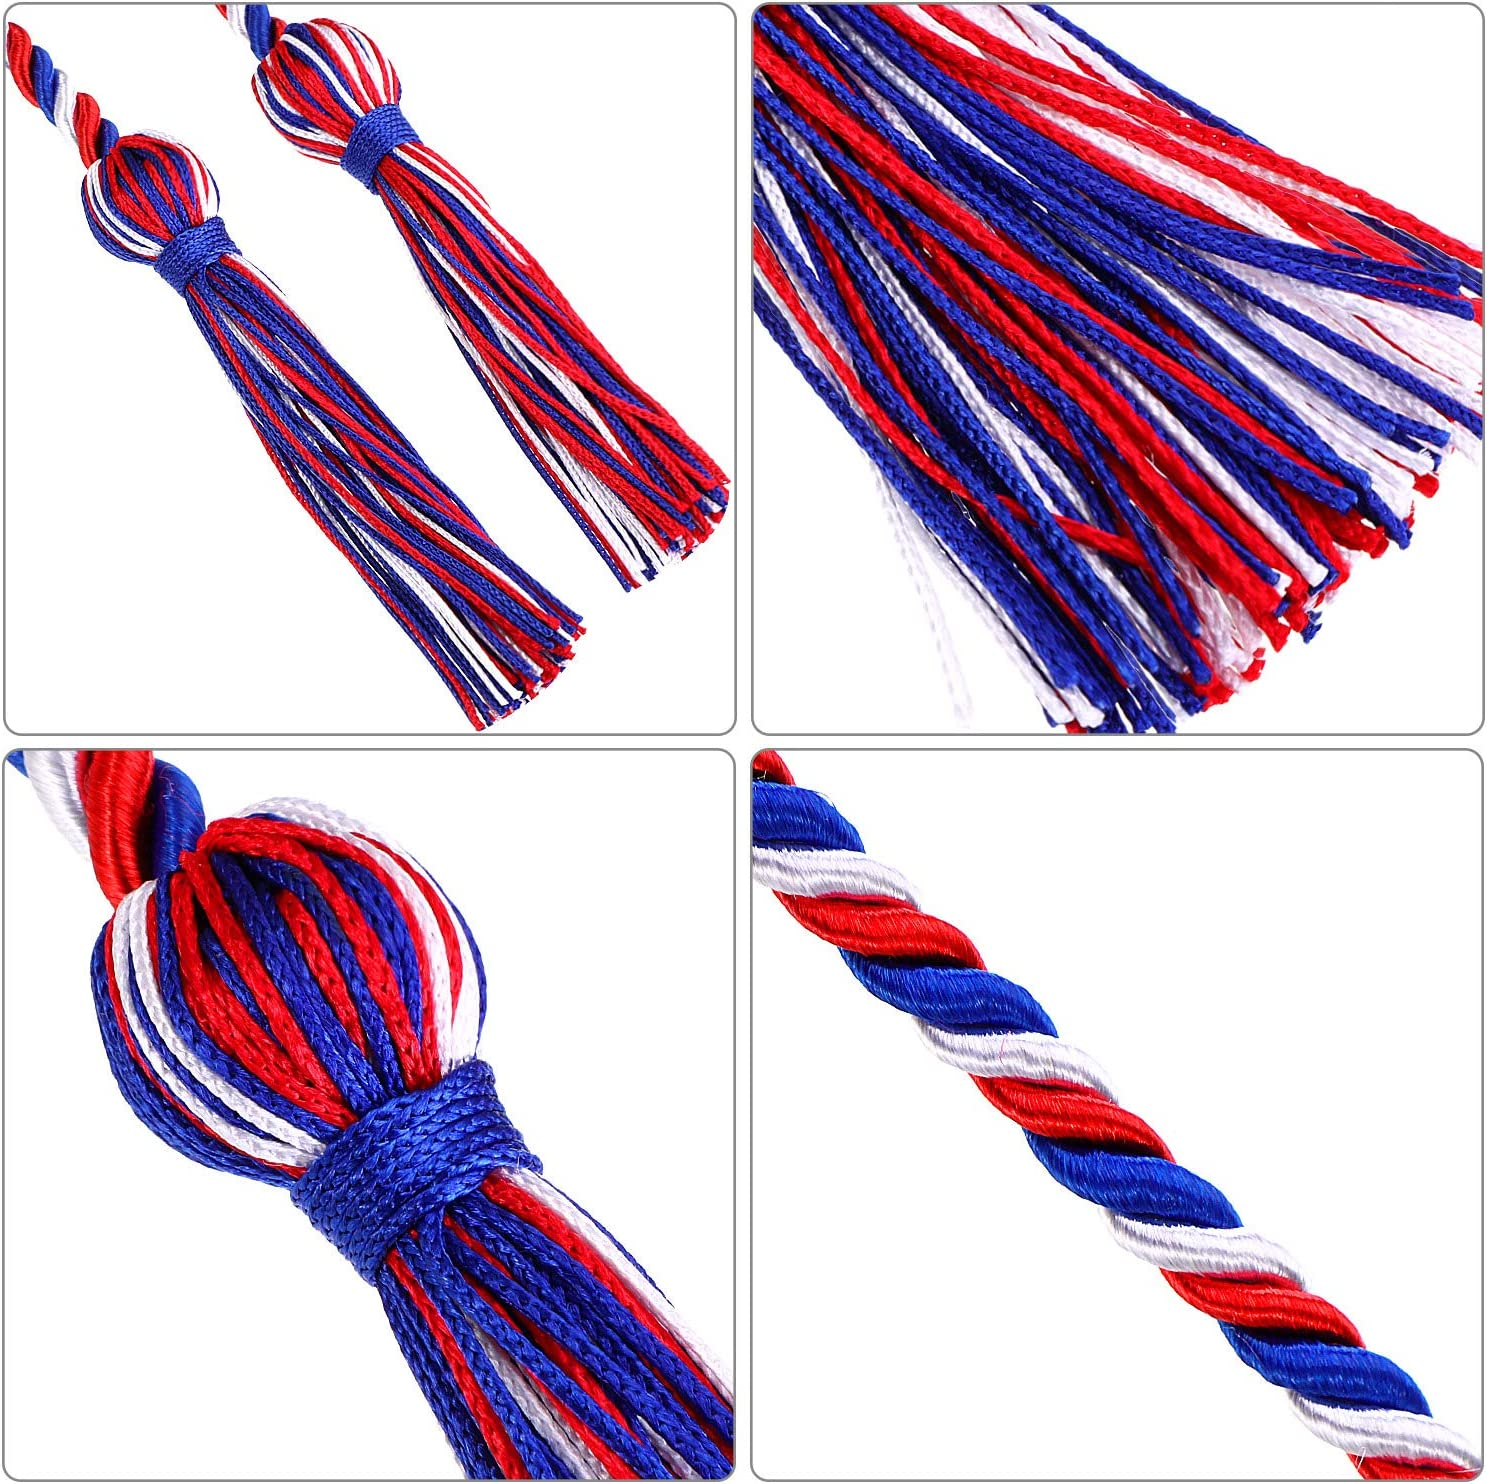 Red 6 Pieces Honor Cord Graduation Cord with Tassel Braided Grad Days Honor Cords for School Graduation Ceremony Party